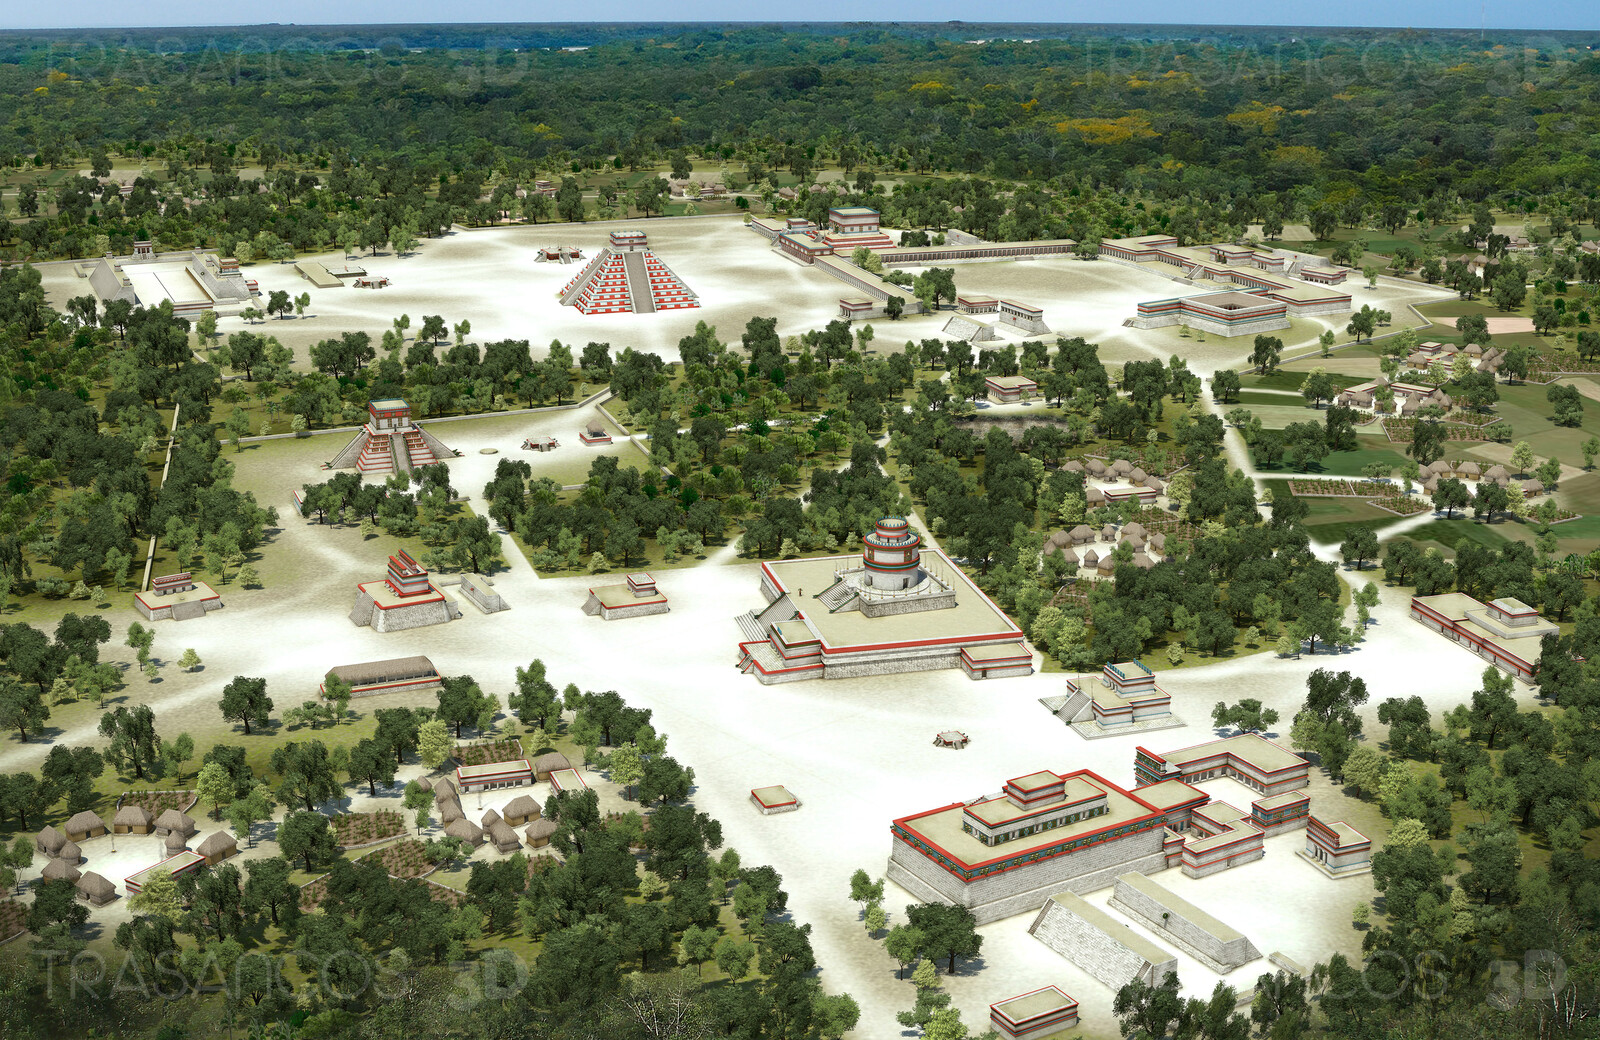 View of the reconstructed mayan city of Chichen Itza. Modeled in collaboration with: - Andrés Armesto - Alejandro Soriano - Carlos Paz - Diego Blanco